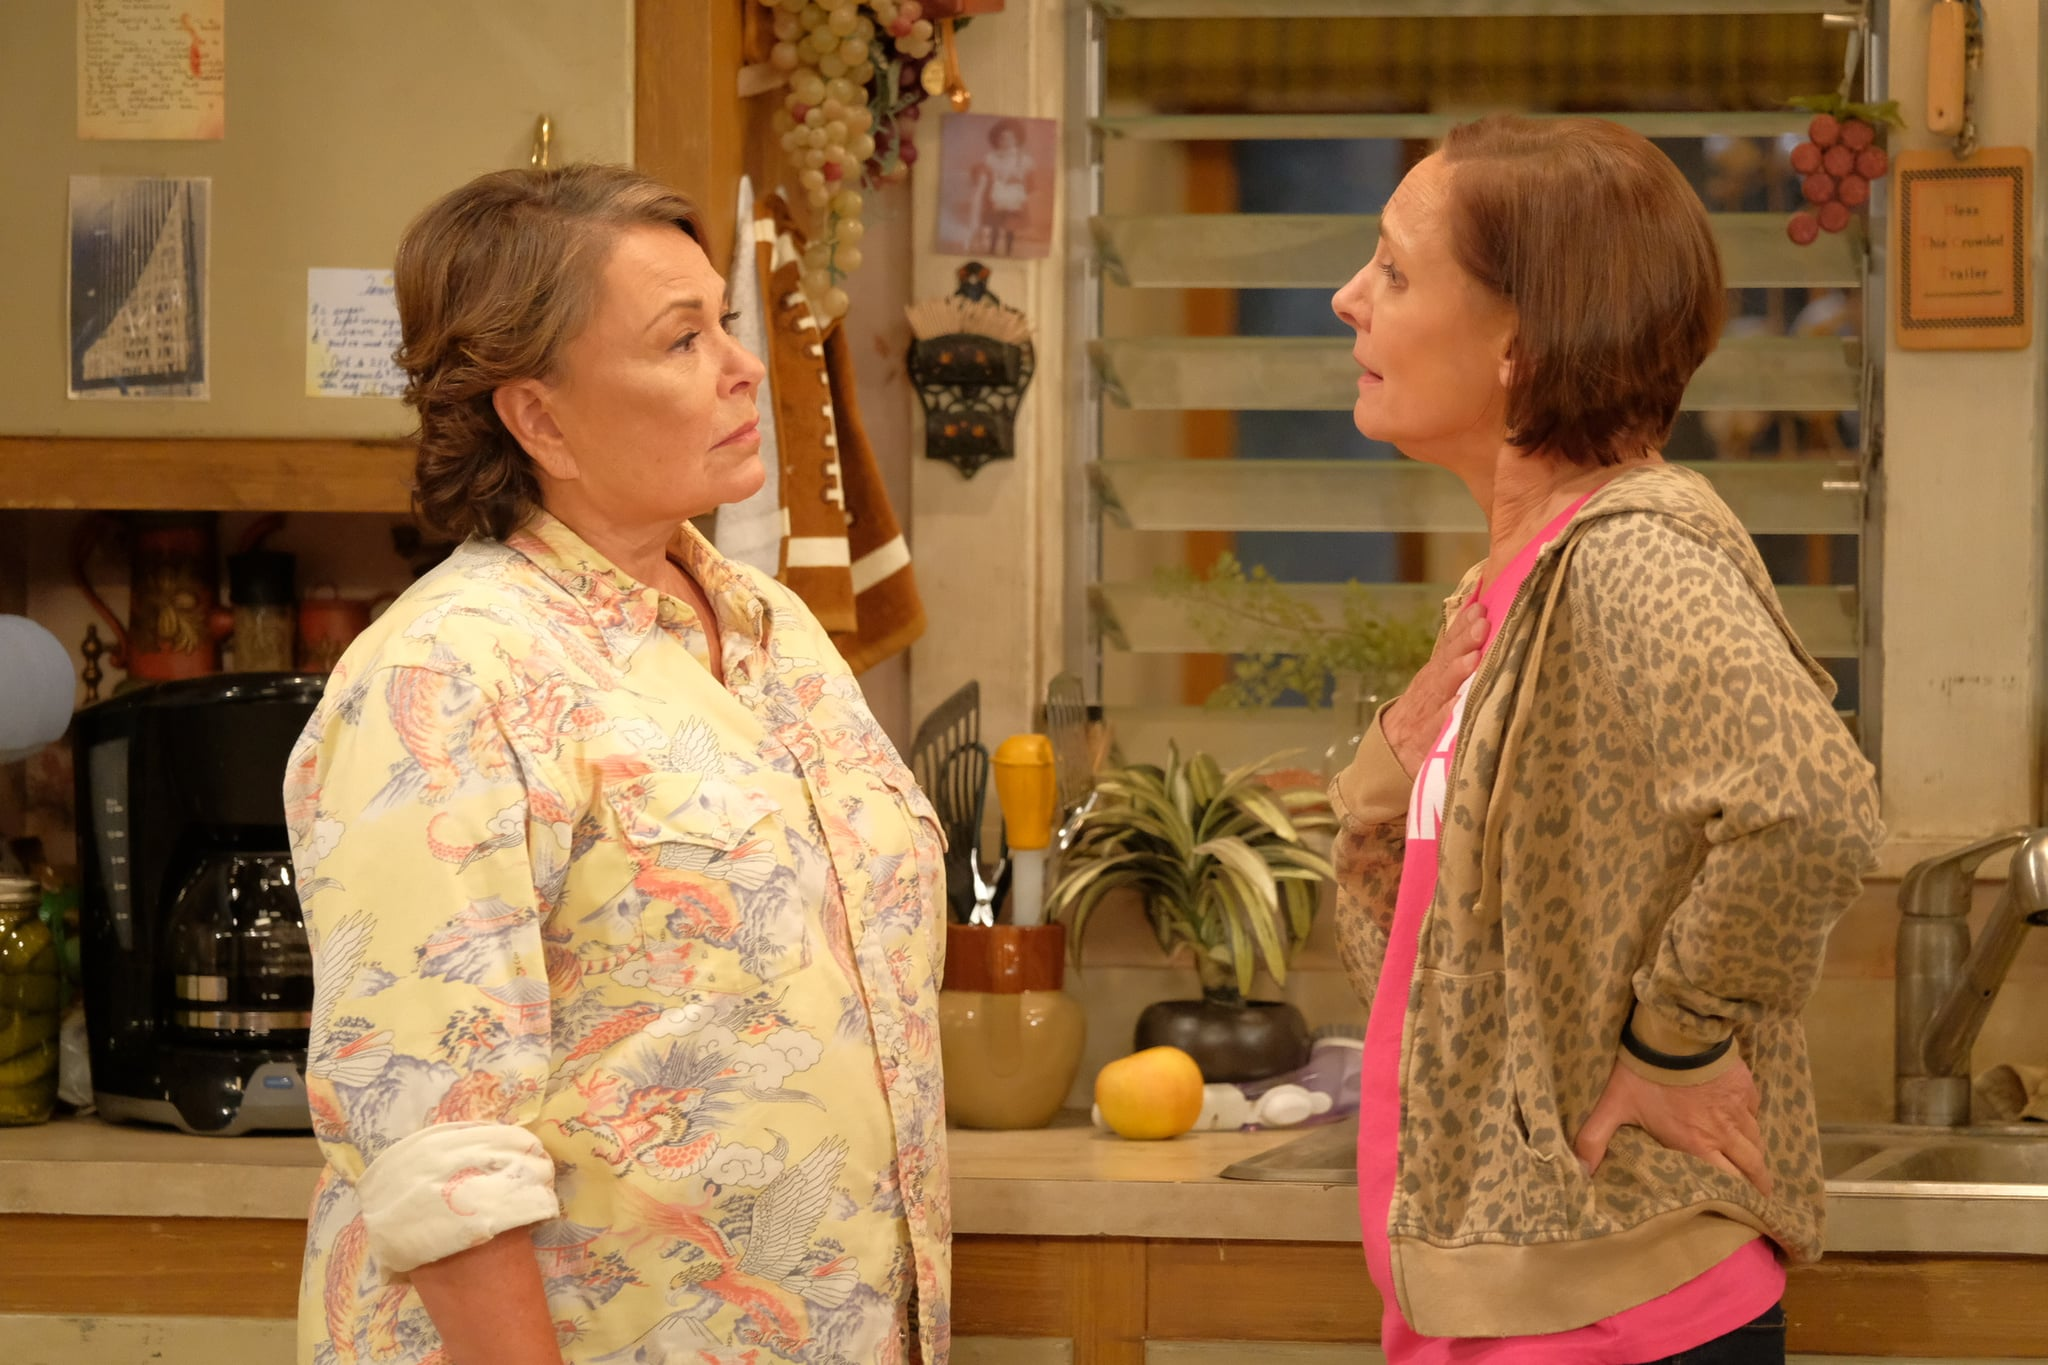 'Roseanne' returns to TV as a Trump supporter